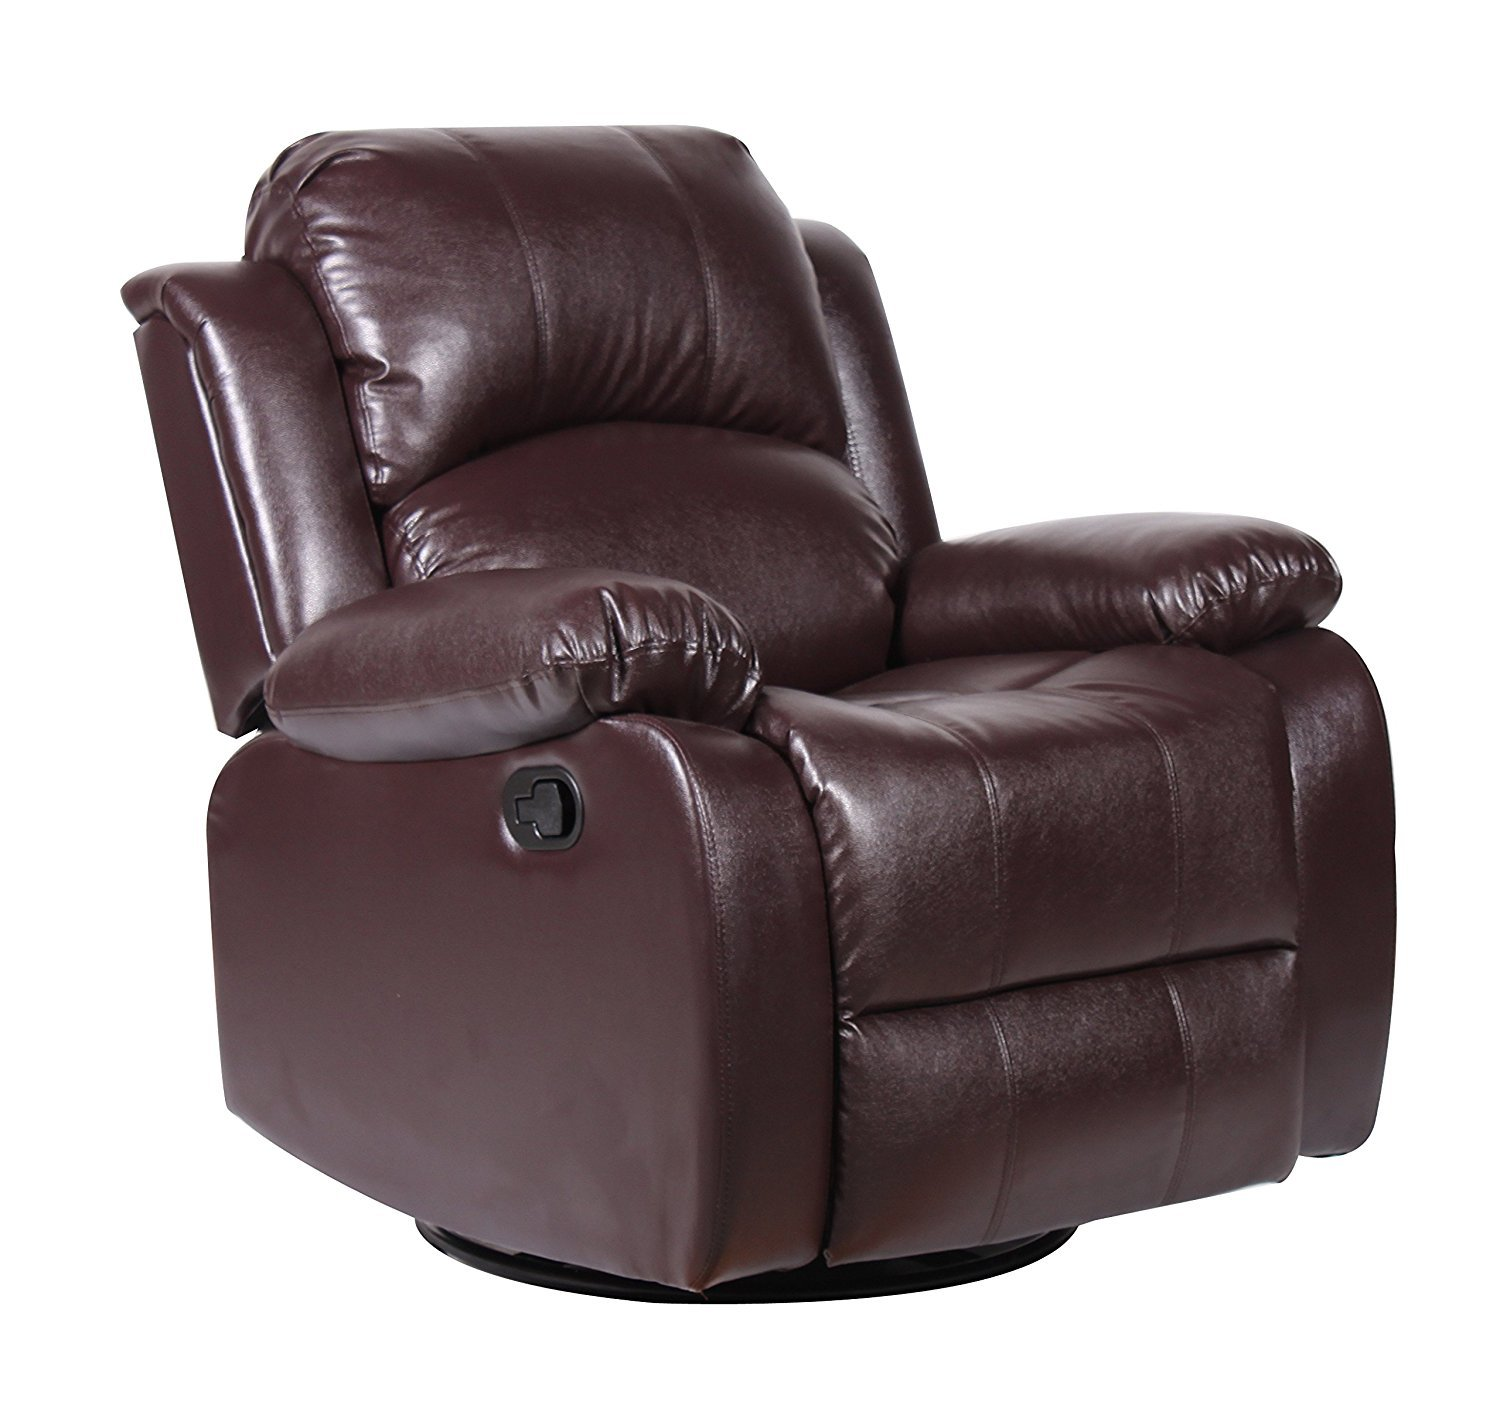 Swivel rocker chairs for living room home furniture design for Swivel chairs for living room